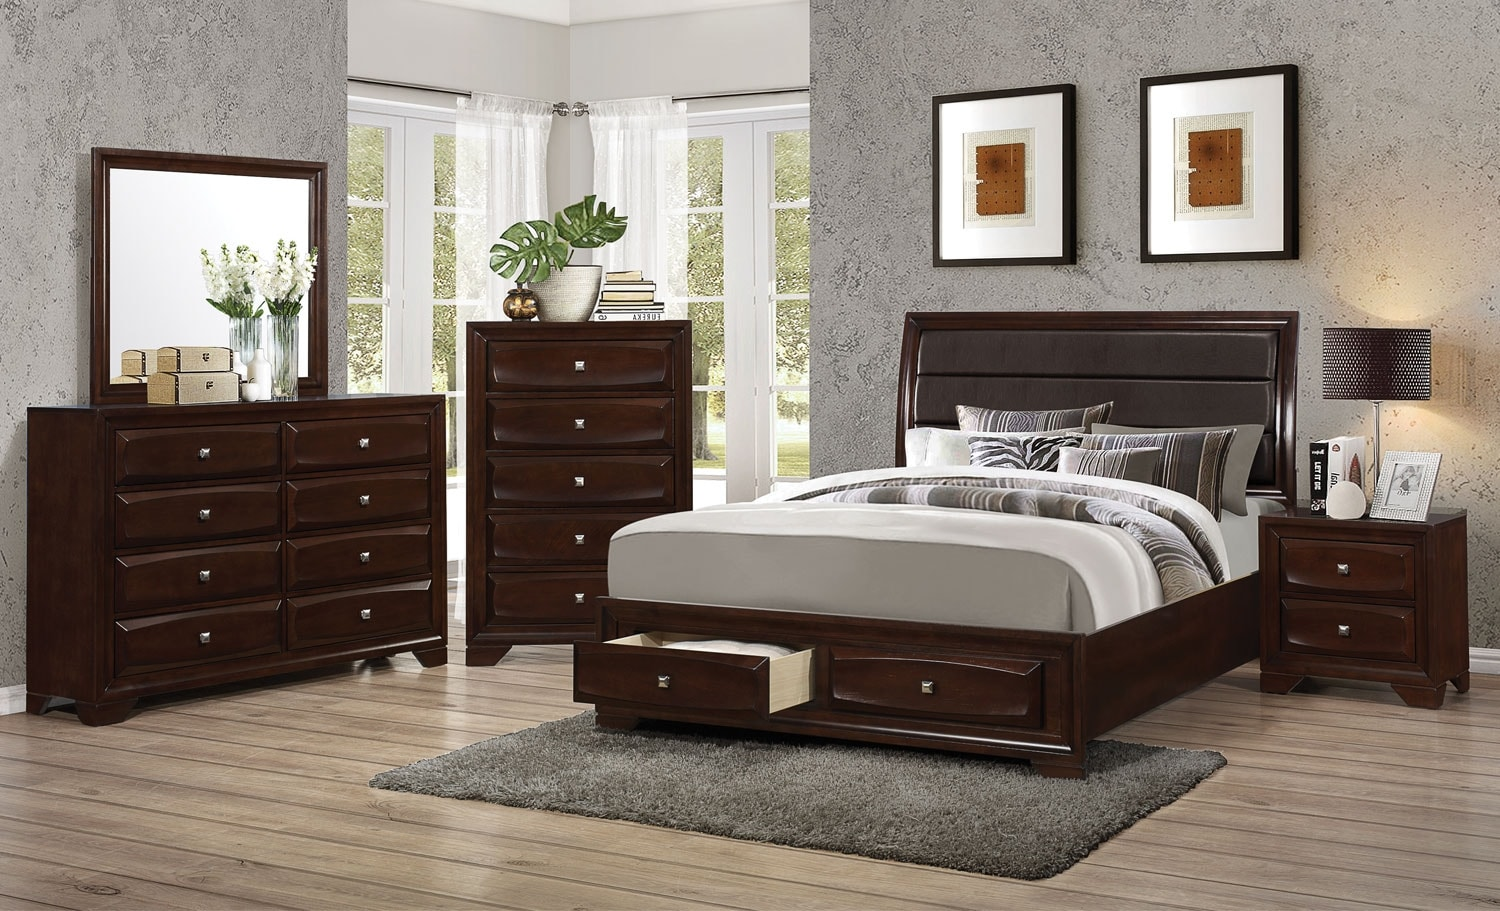 Bedroom Furniture - Jaxon 8-Piece King Storage Bedroom Package